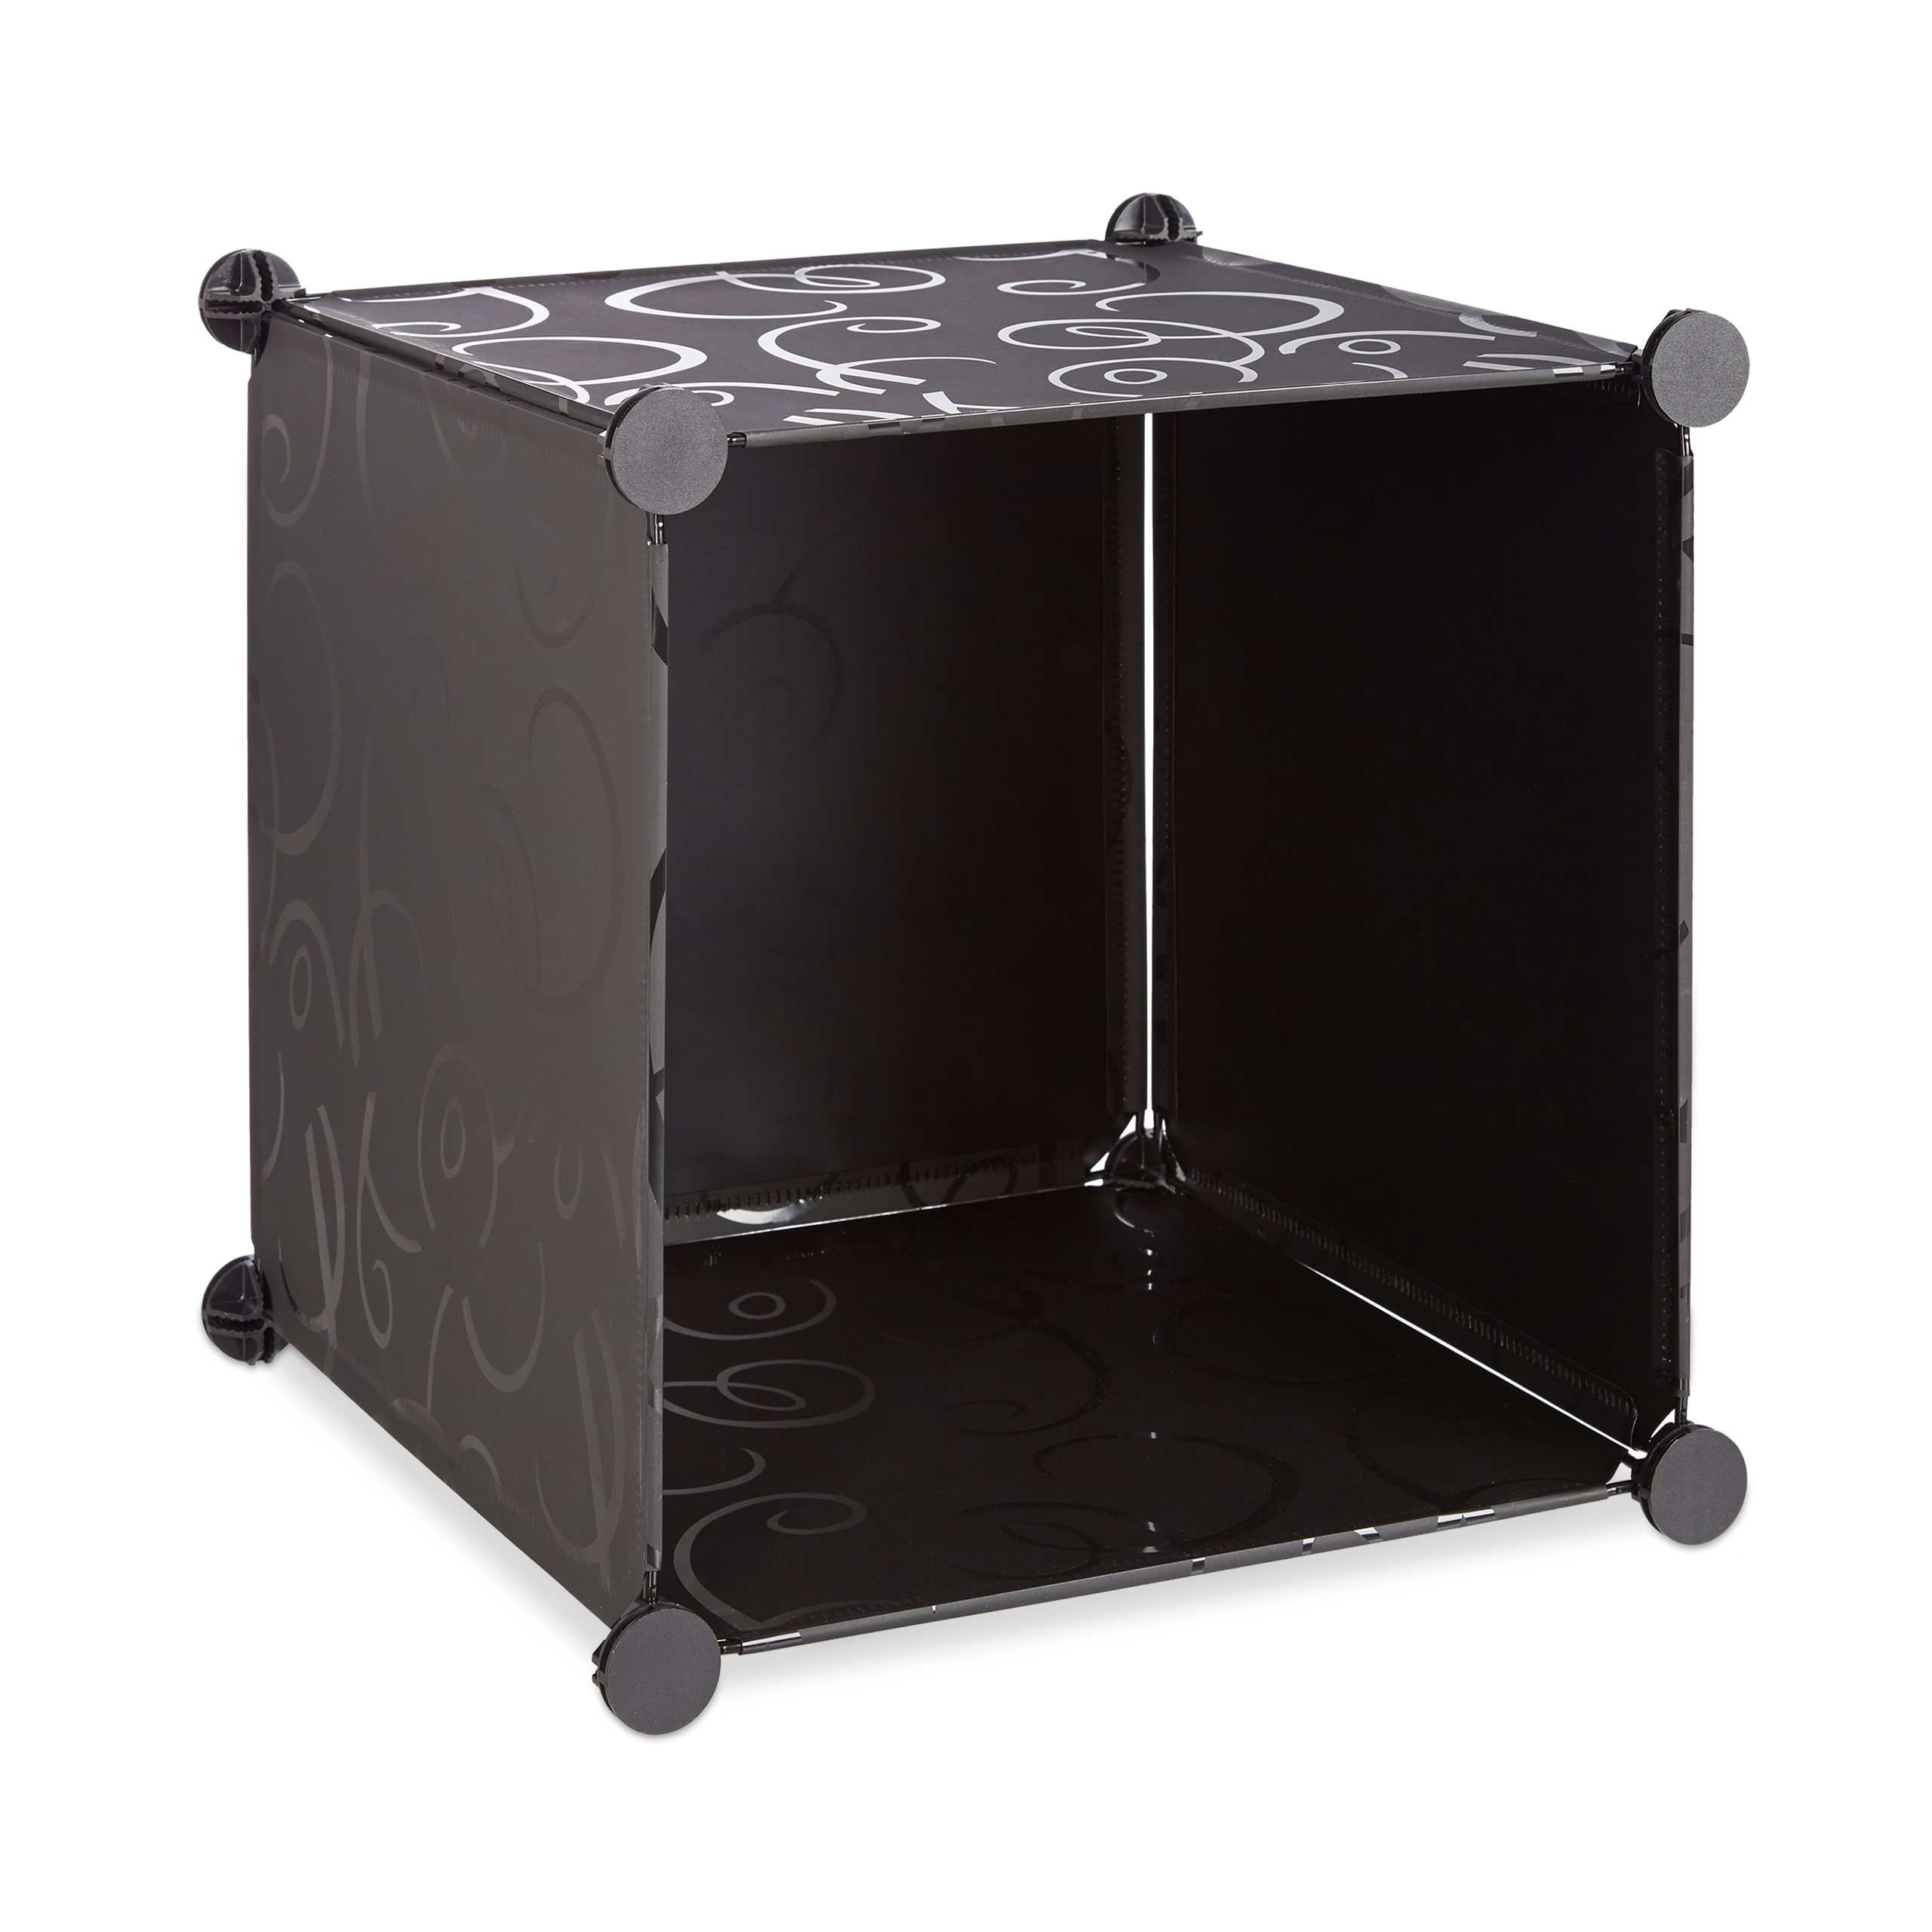 Boltless-Plastic-with-16-Compartments-Shelving-System-DIY-with-doors-Plastic-Cabinet thumbnail 6